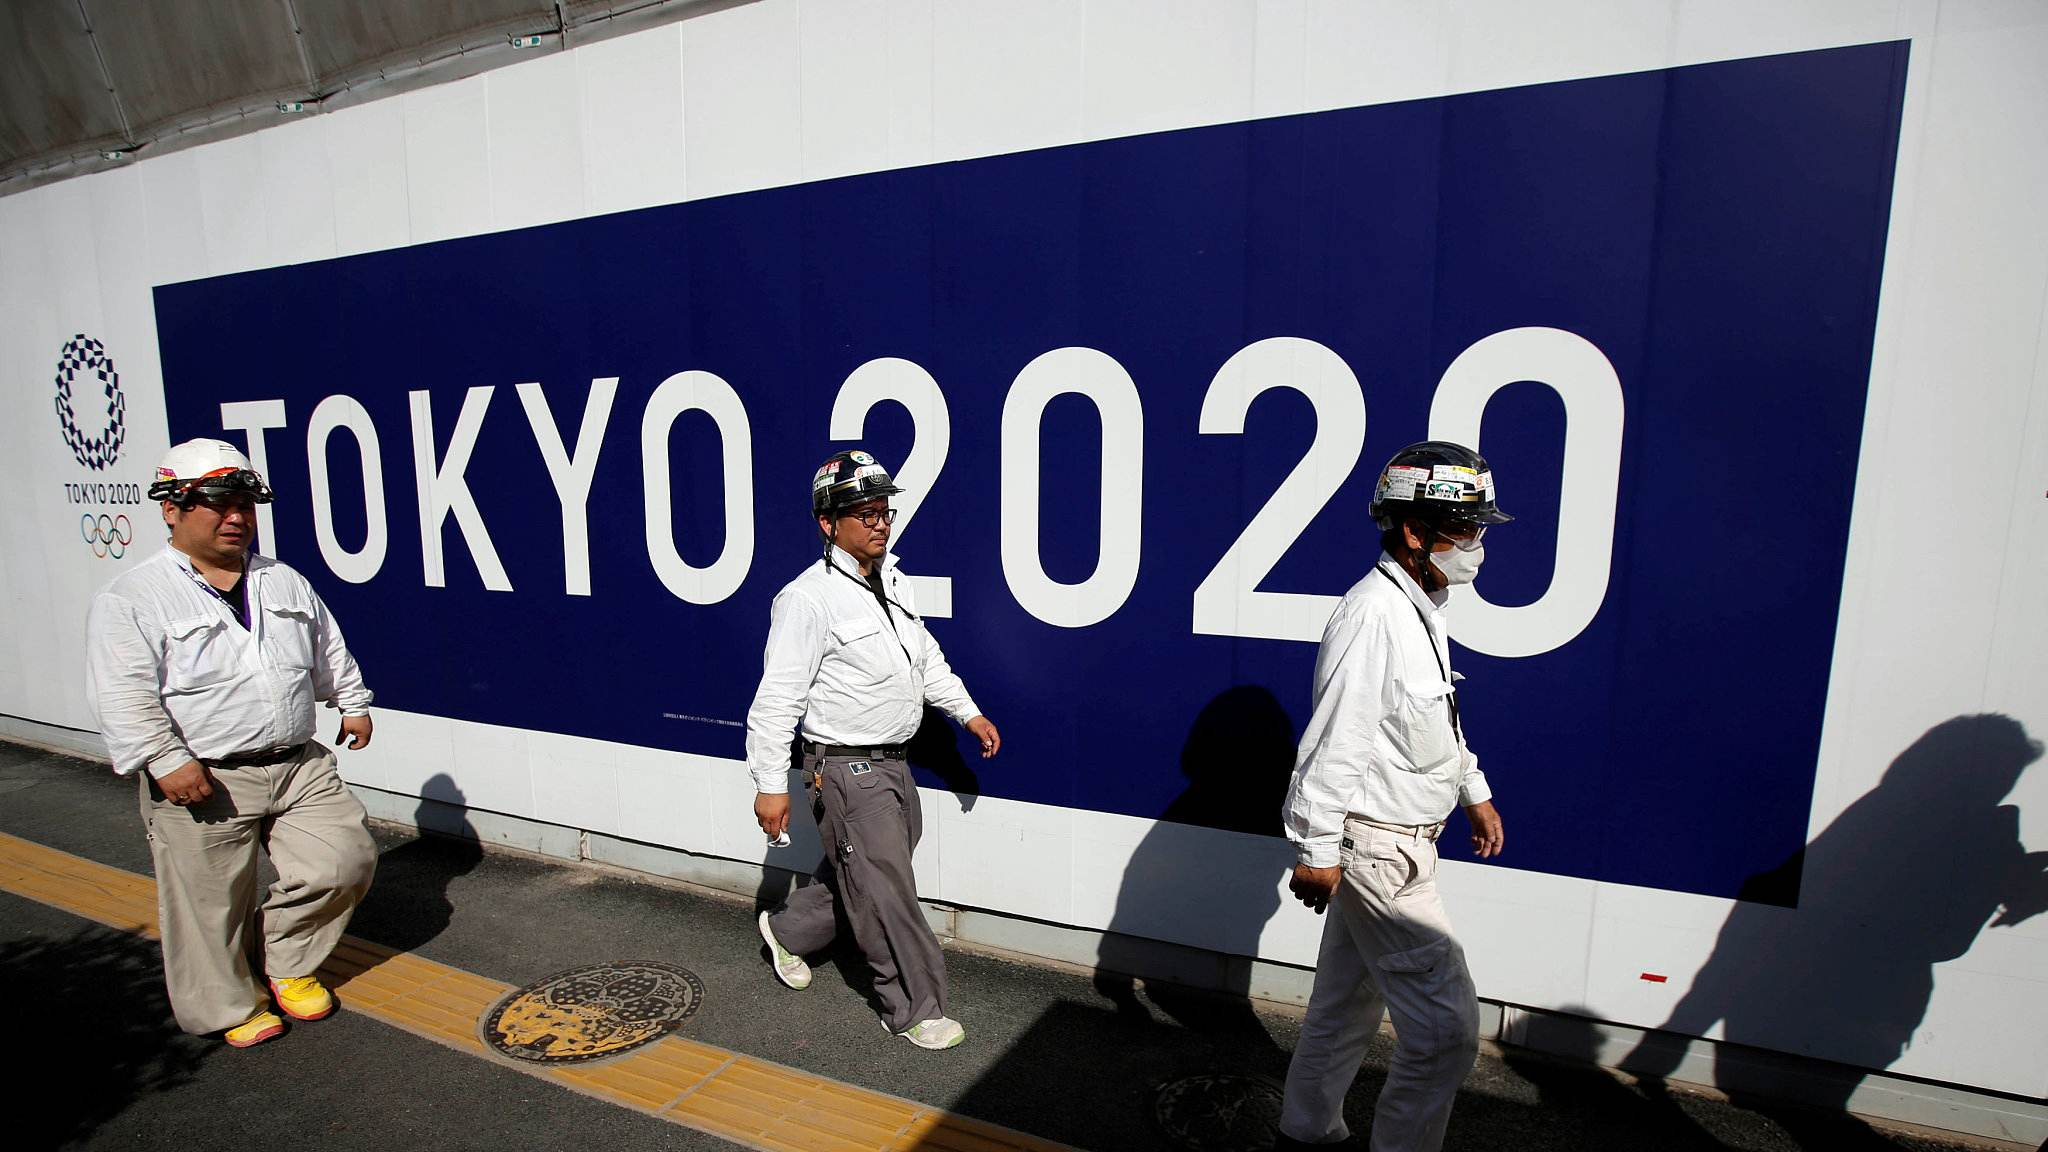 Former WHO regional director Omi says 'too early' to think about Tokyo Olympics